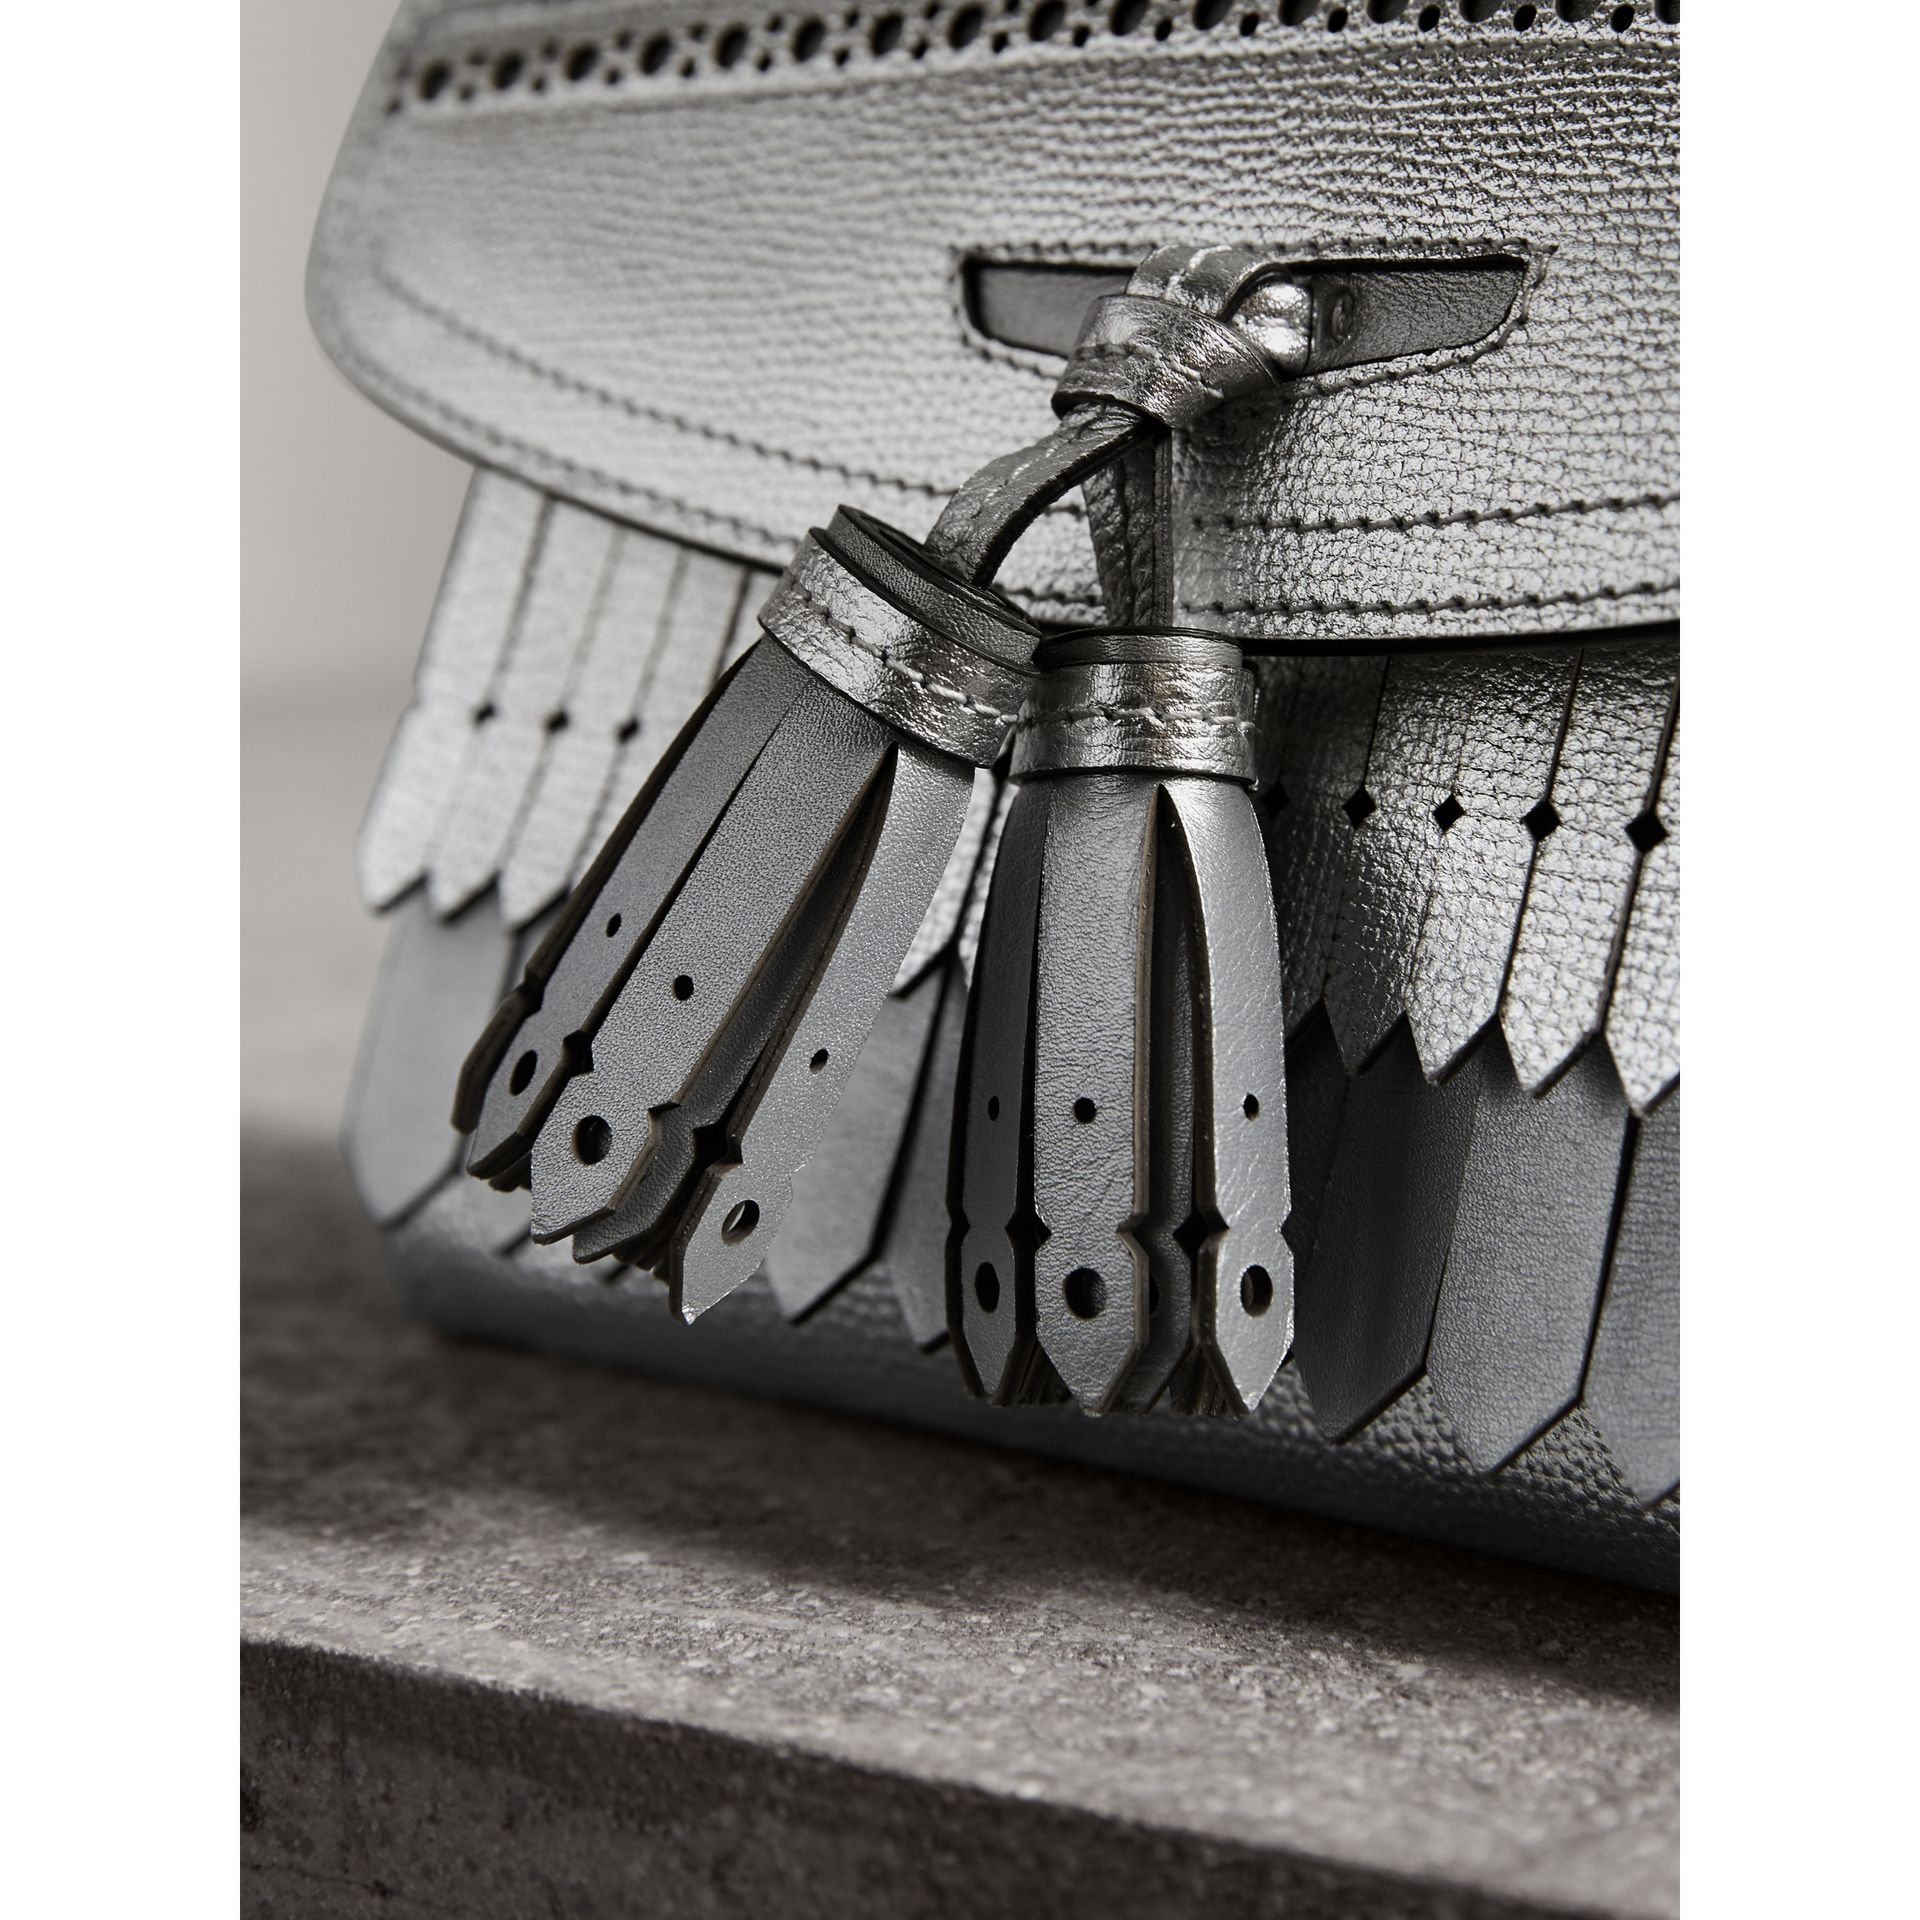 Brogue Detail Metallic Leather Crossbody Bag in Silver - Women | Burberry - gallery image 2